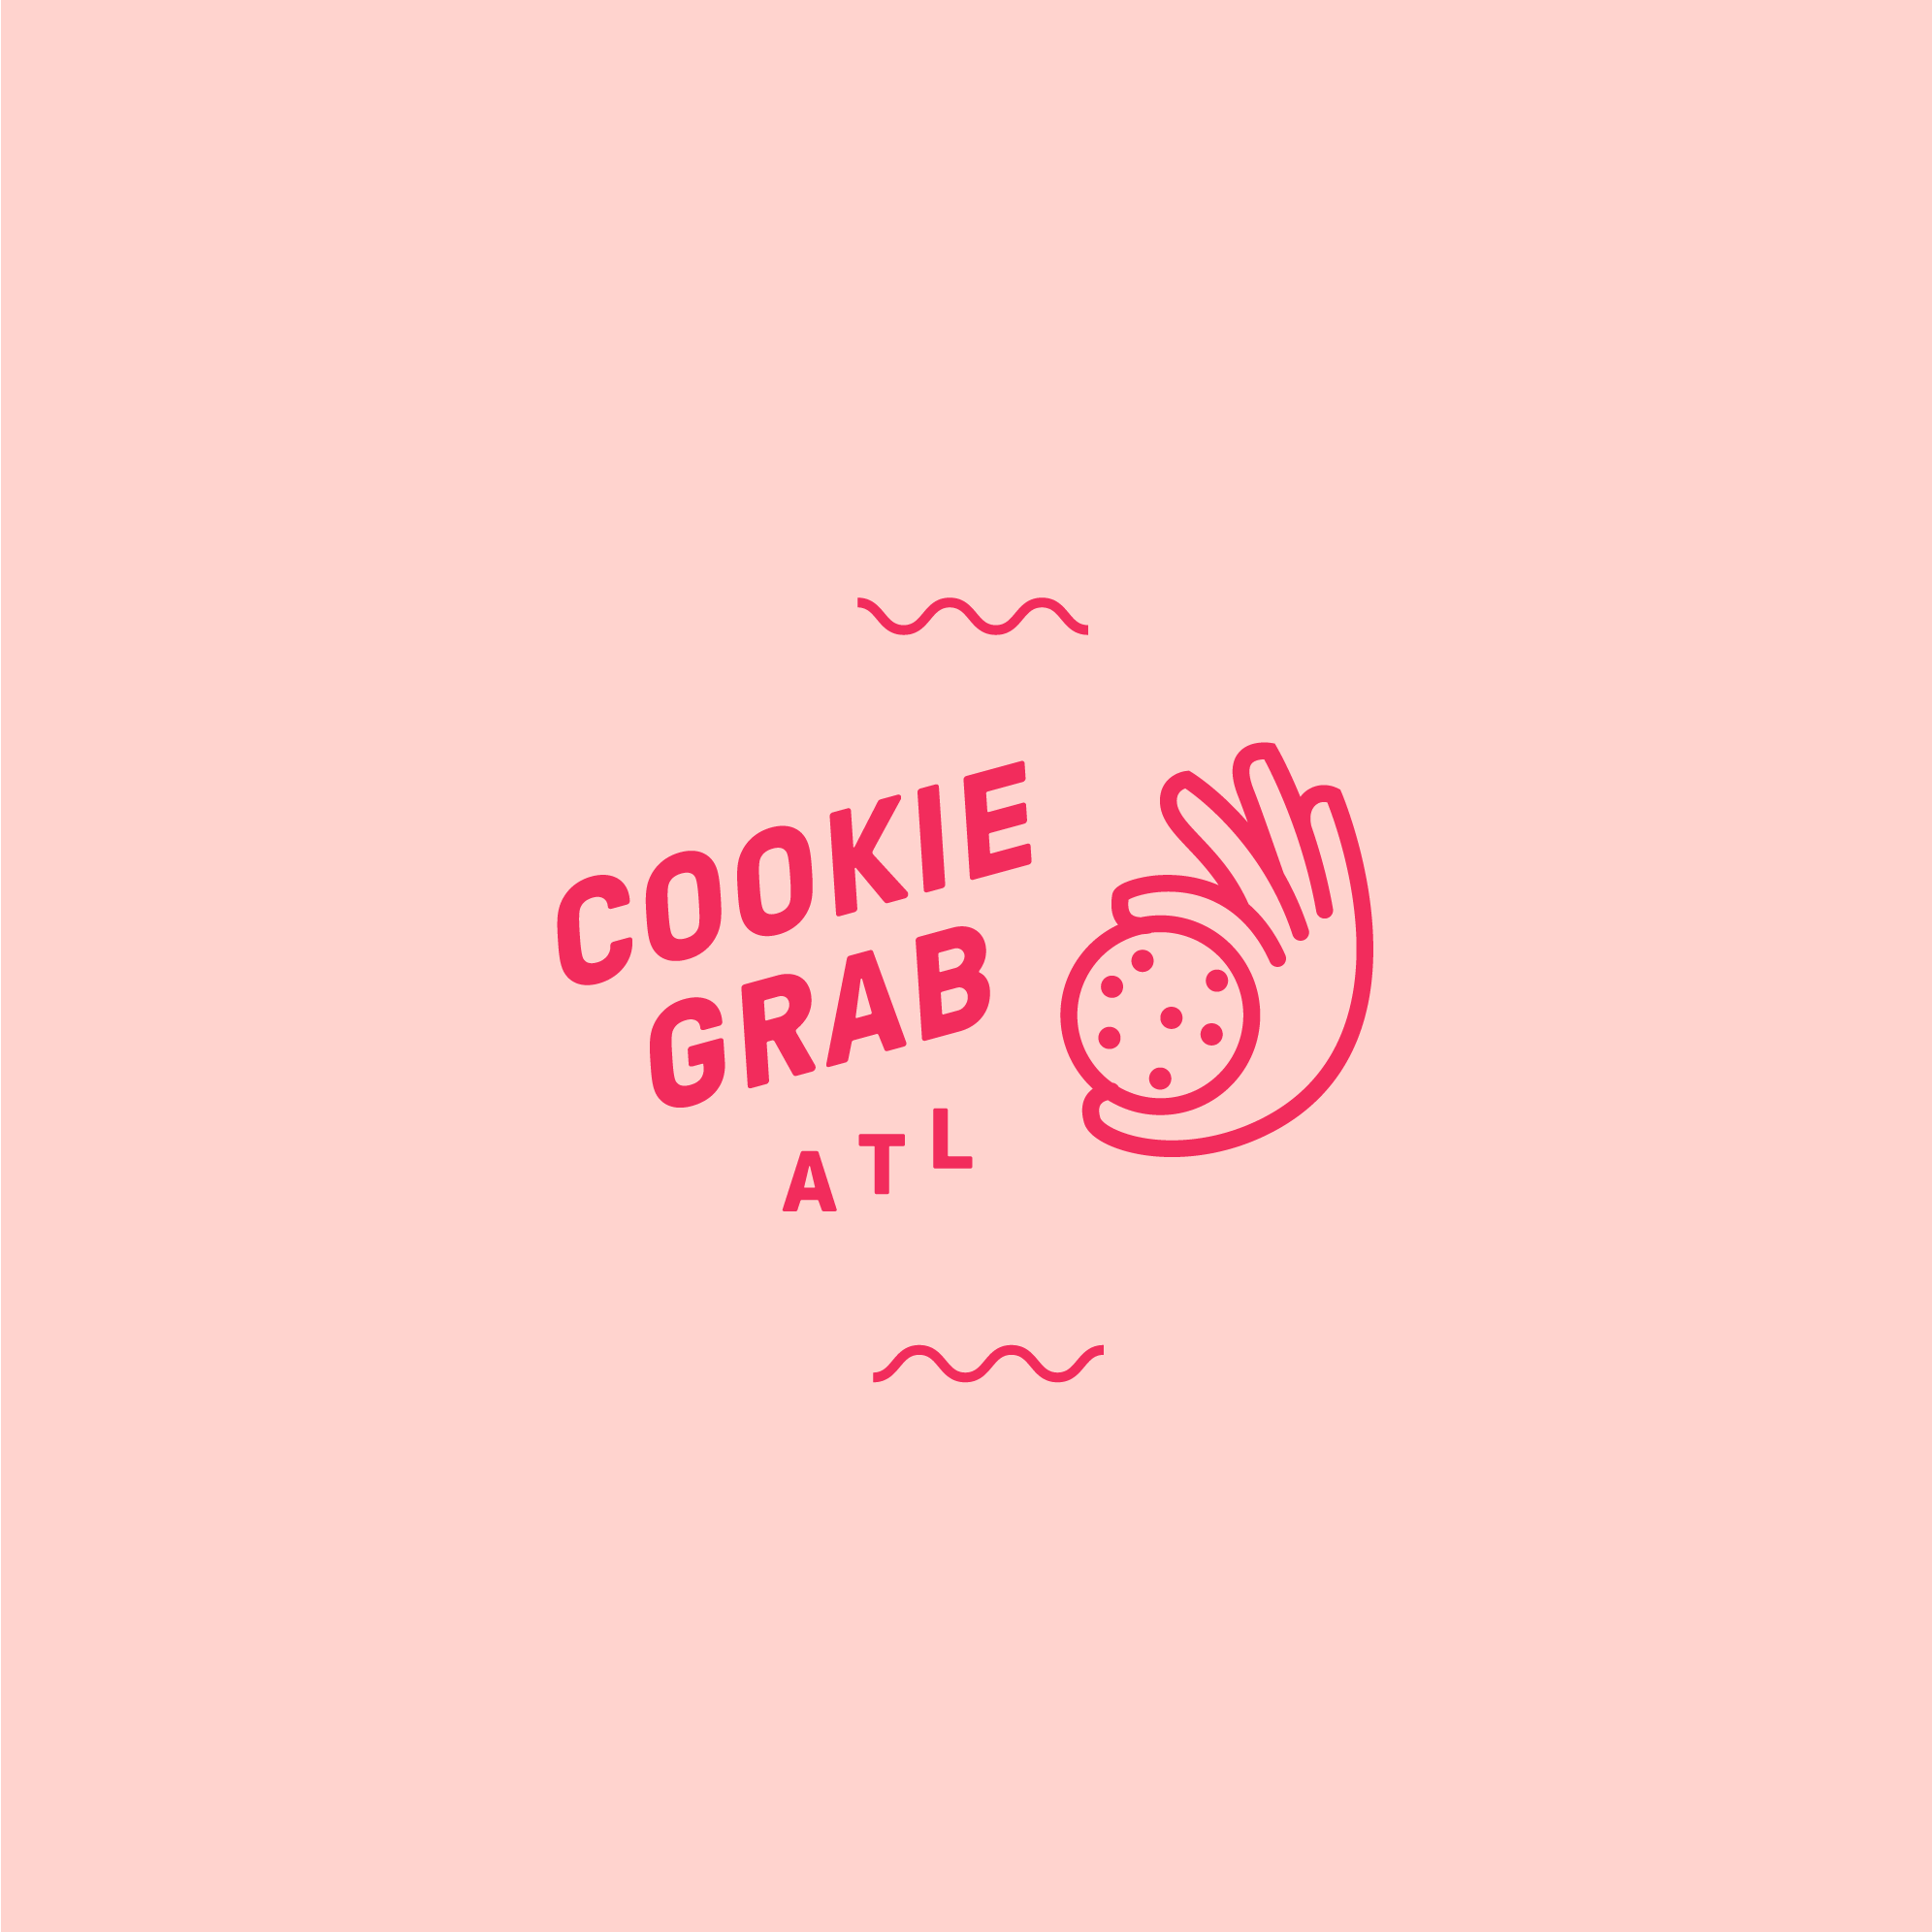 Cookie Grab